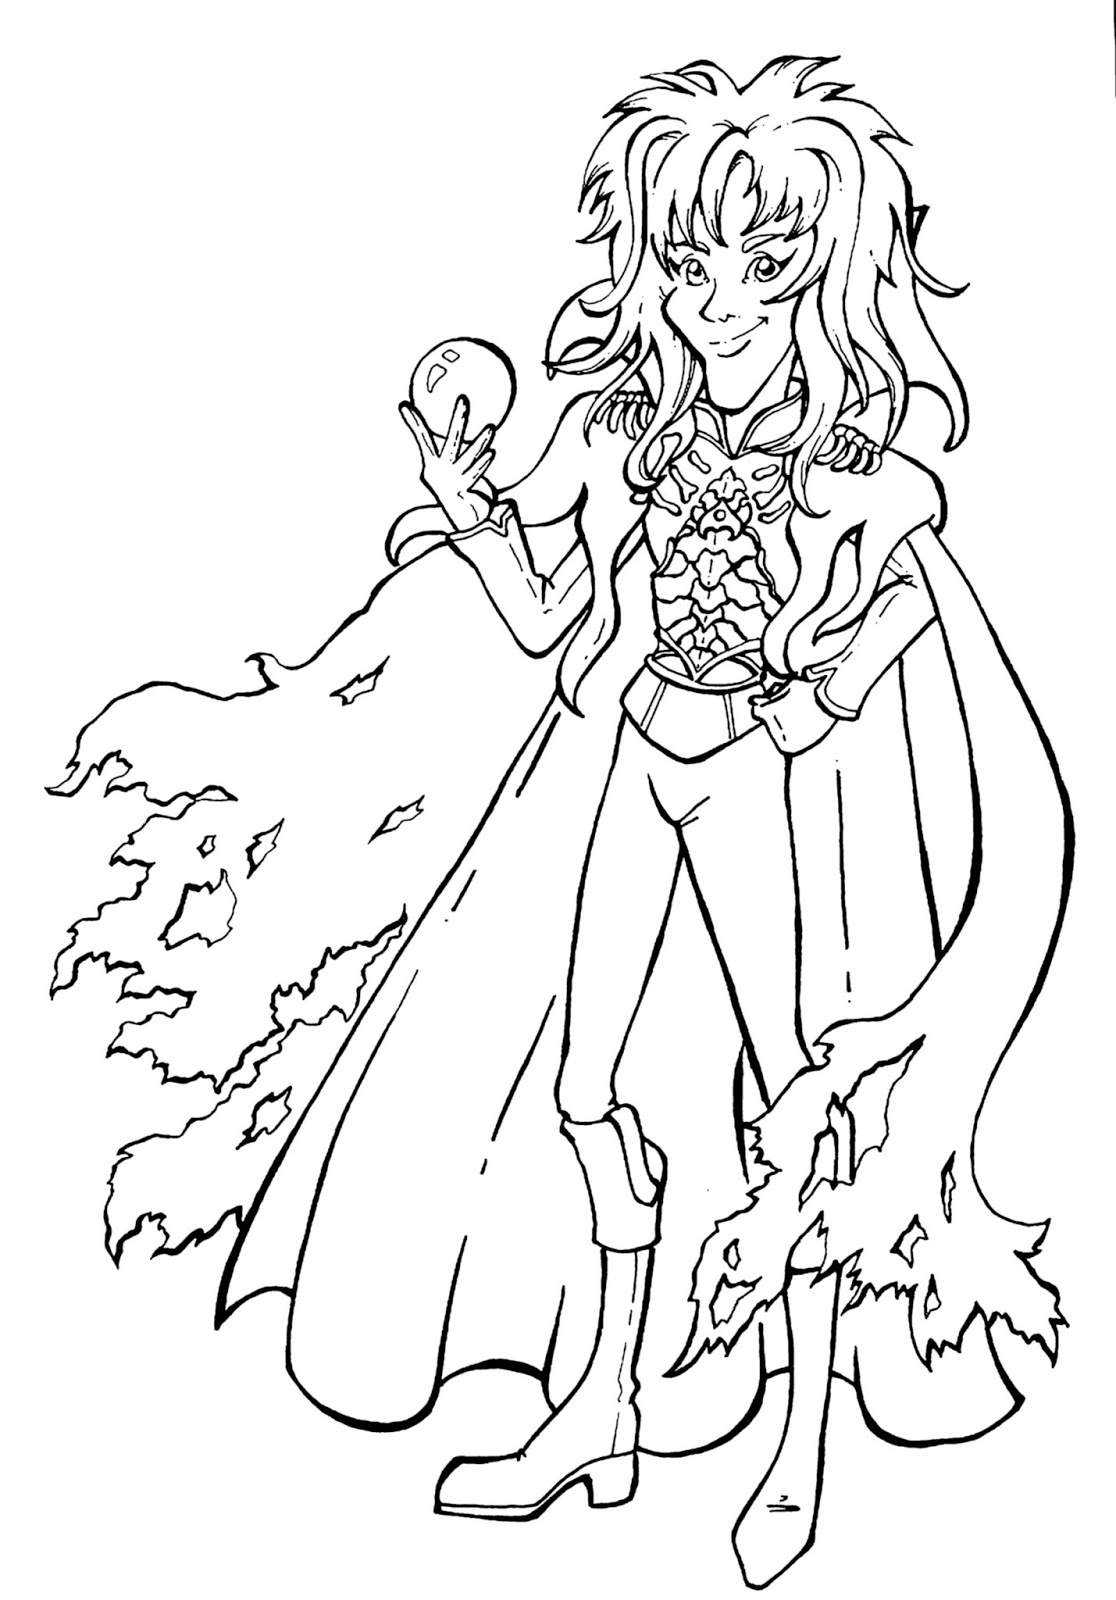 Jareth Anime Labyrinth Coloring Pages Labyrinth Coloring Pages